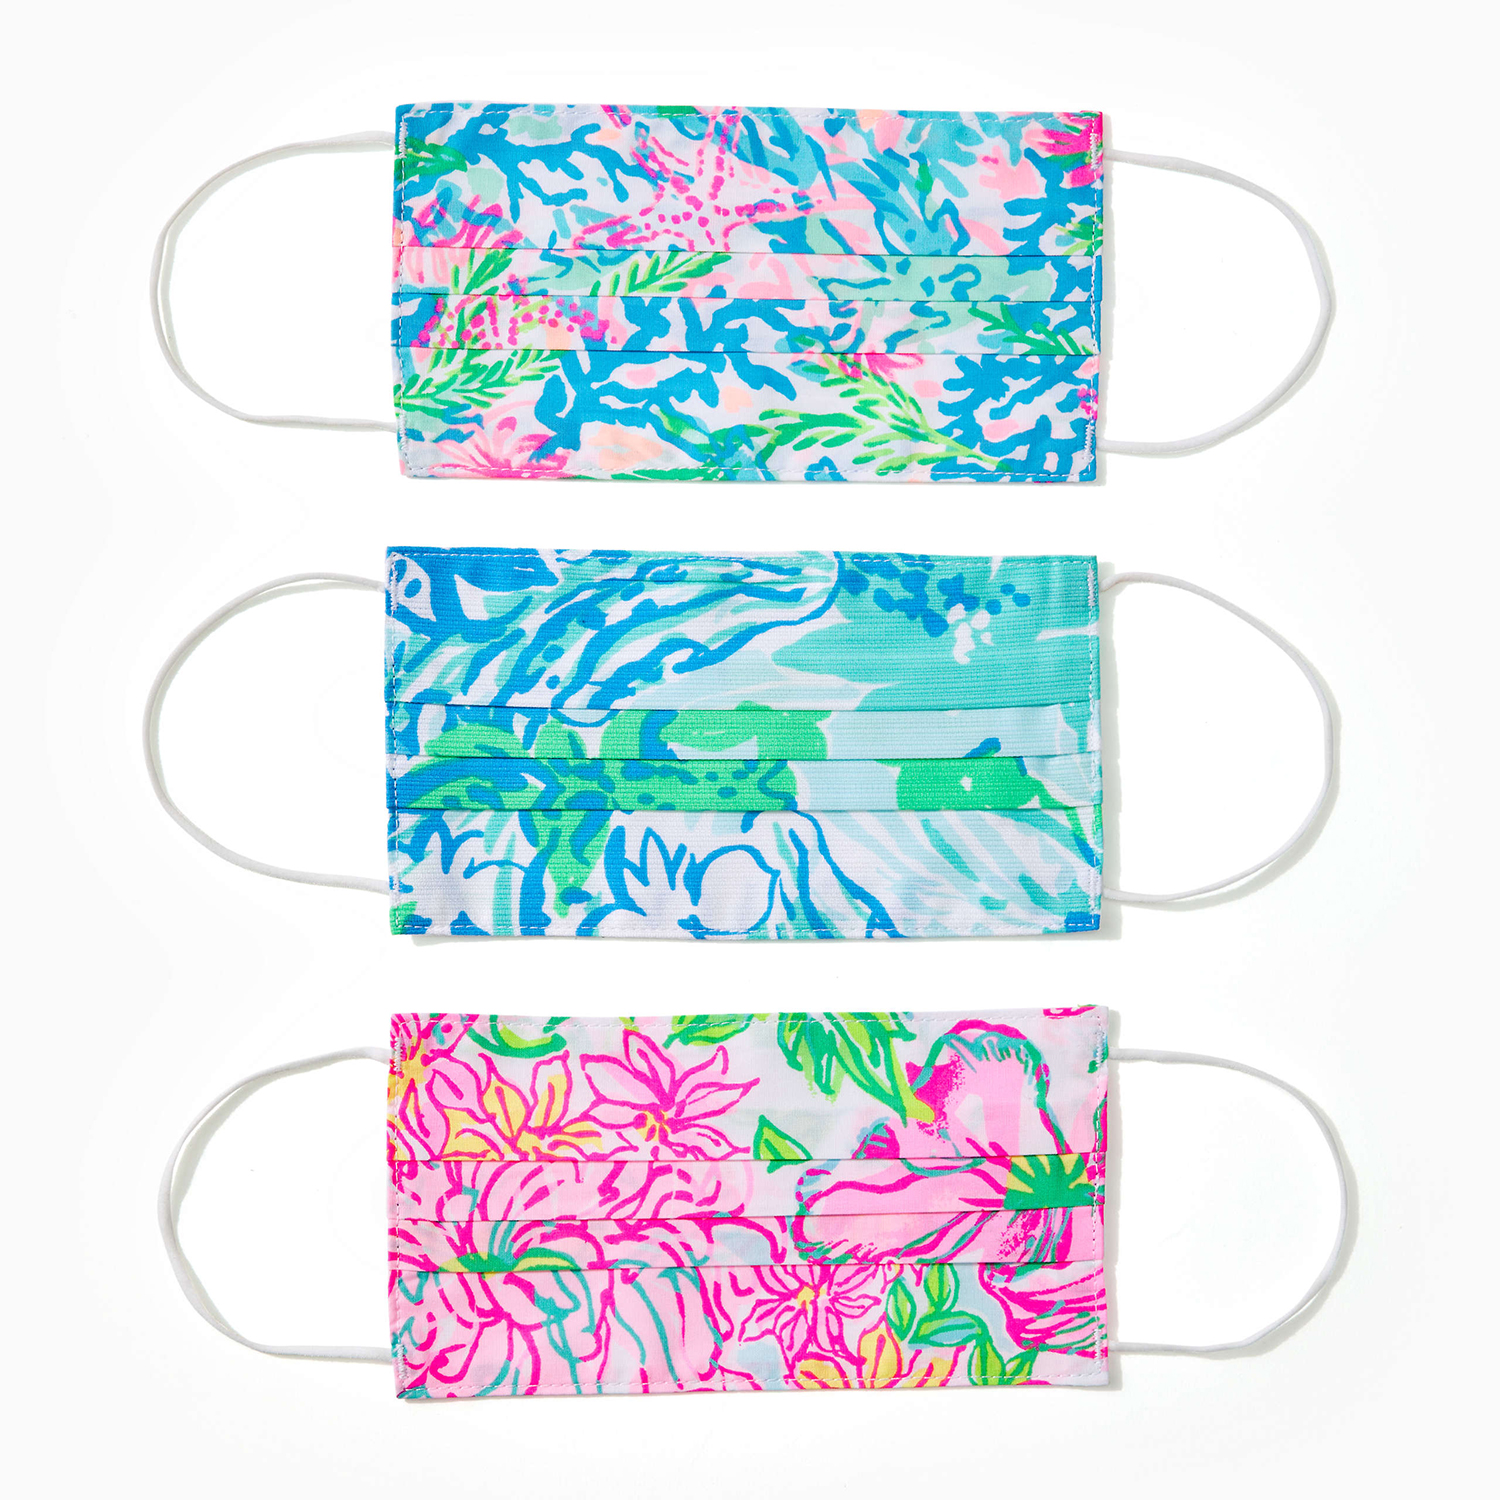 Lilly Pulitzer Face Masks Packs